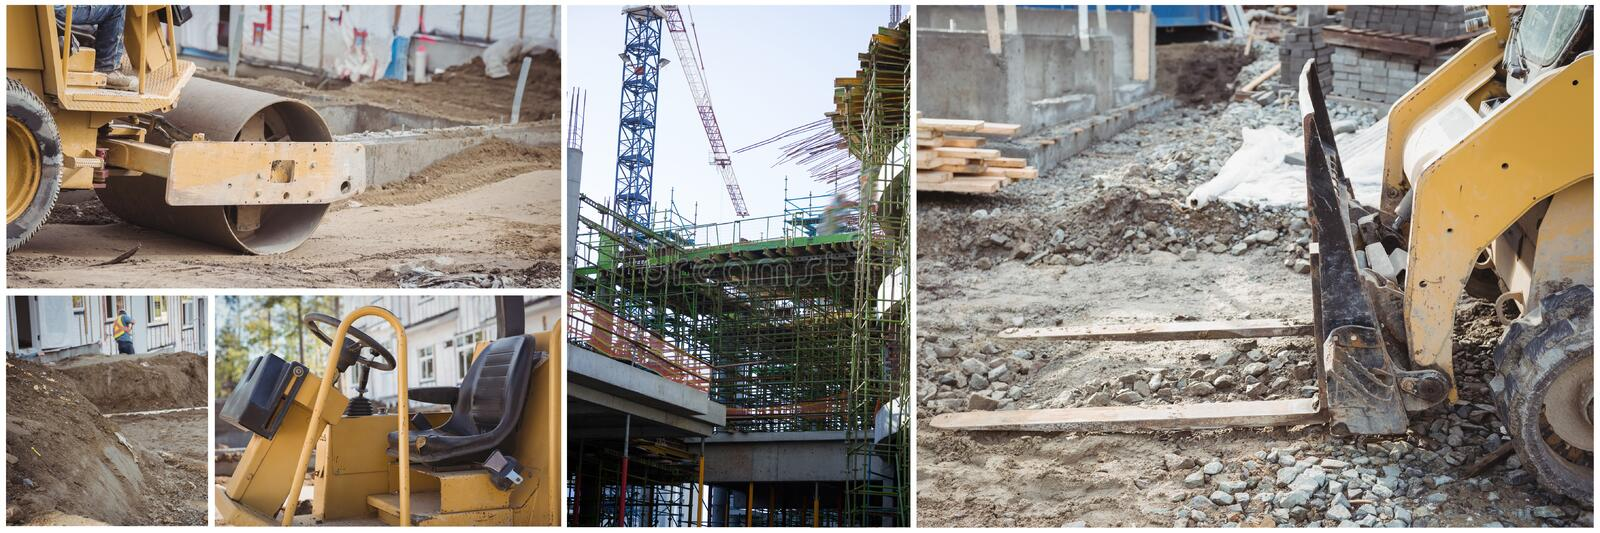 construction work machines collage royalty free stock photography